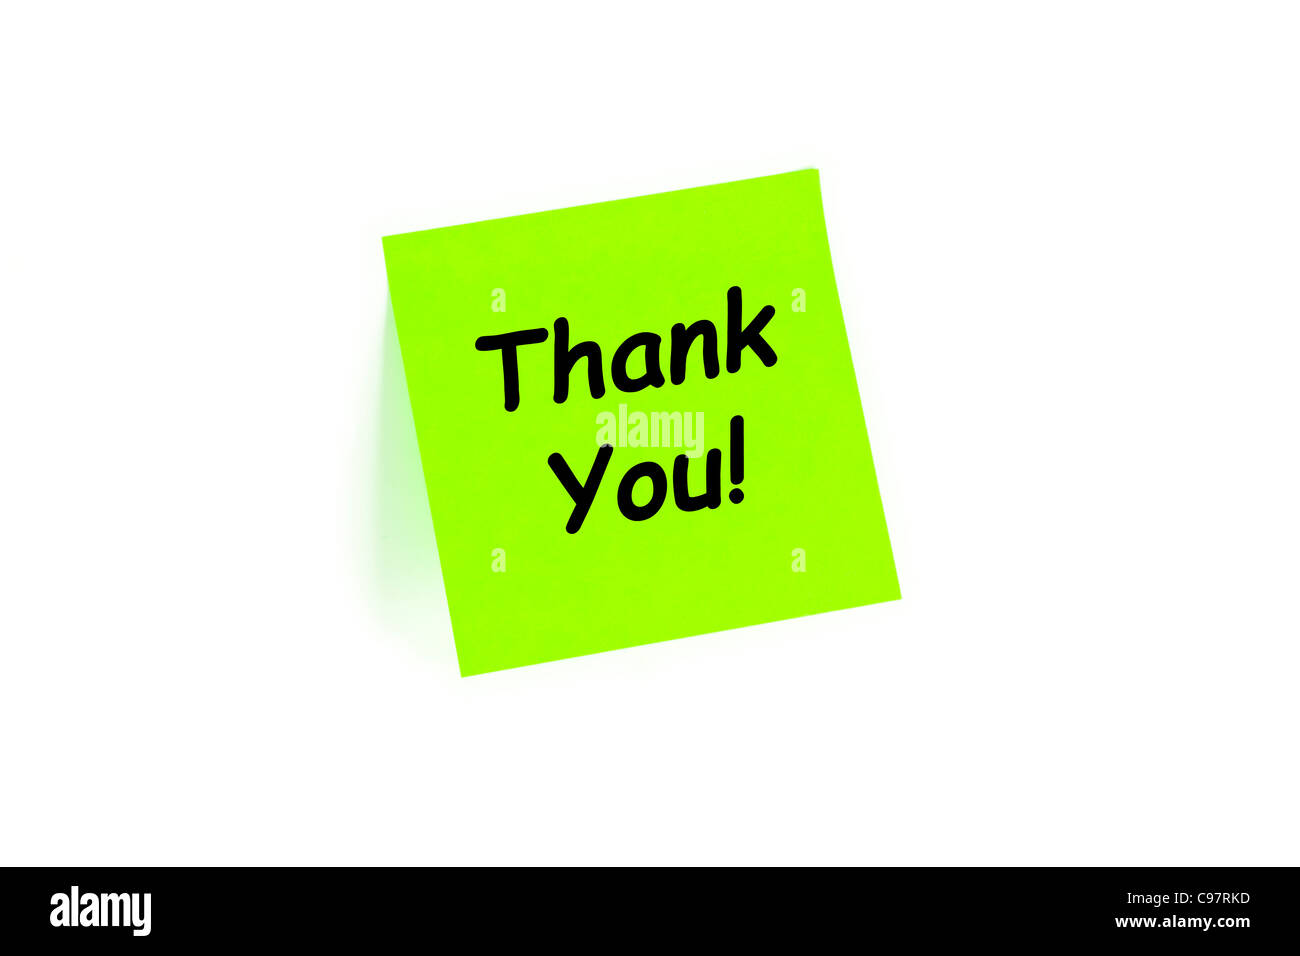 Thank You! On A Note Isolated On White - Stock Image